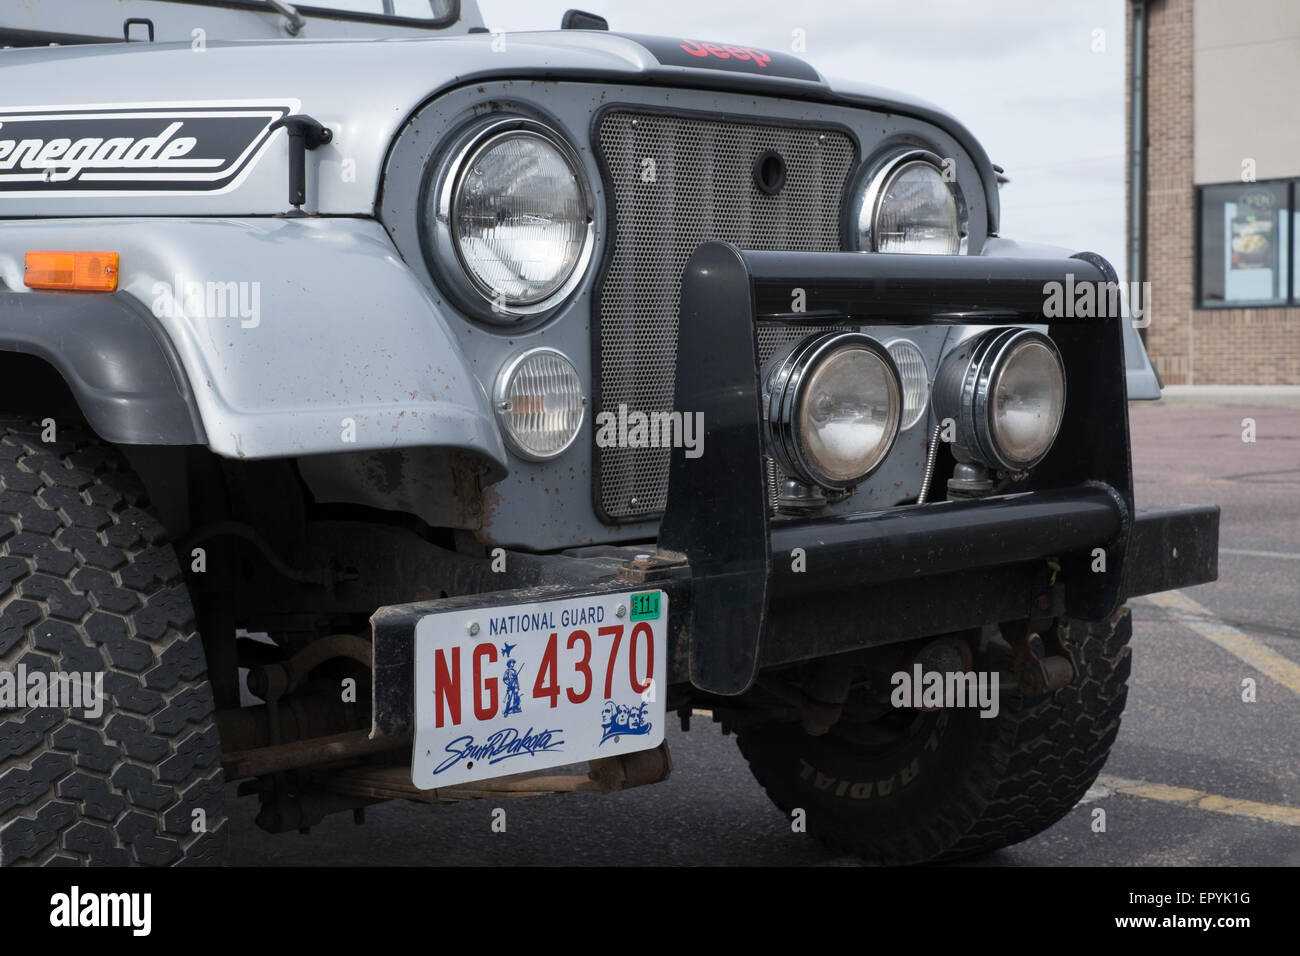 Jeep Renegade Stock Photos Images Alamy Old For Sale With Us National Guard South Dakota Number Plate Image